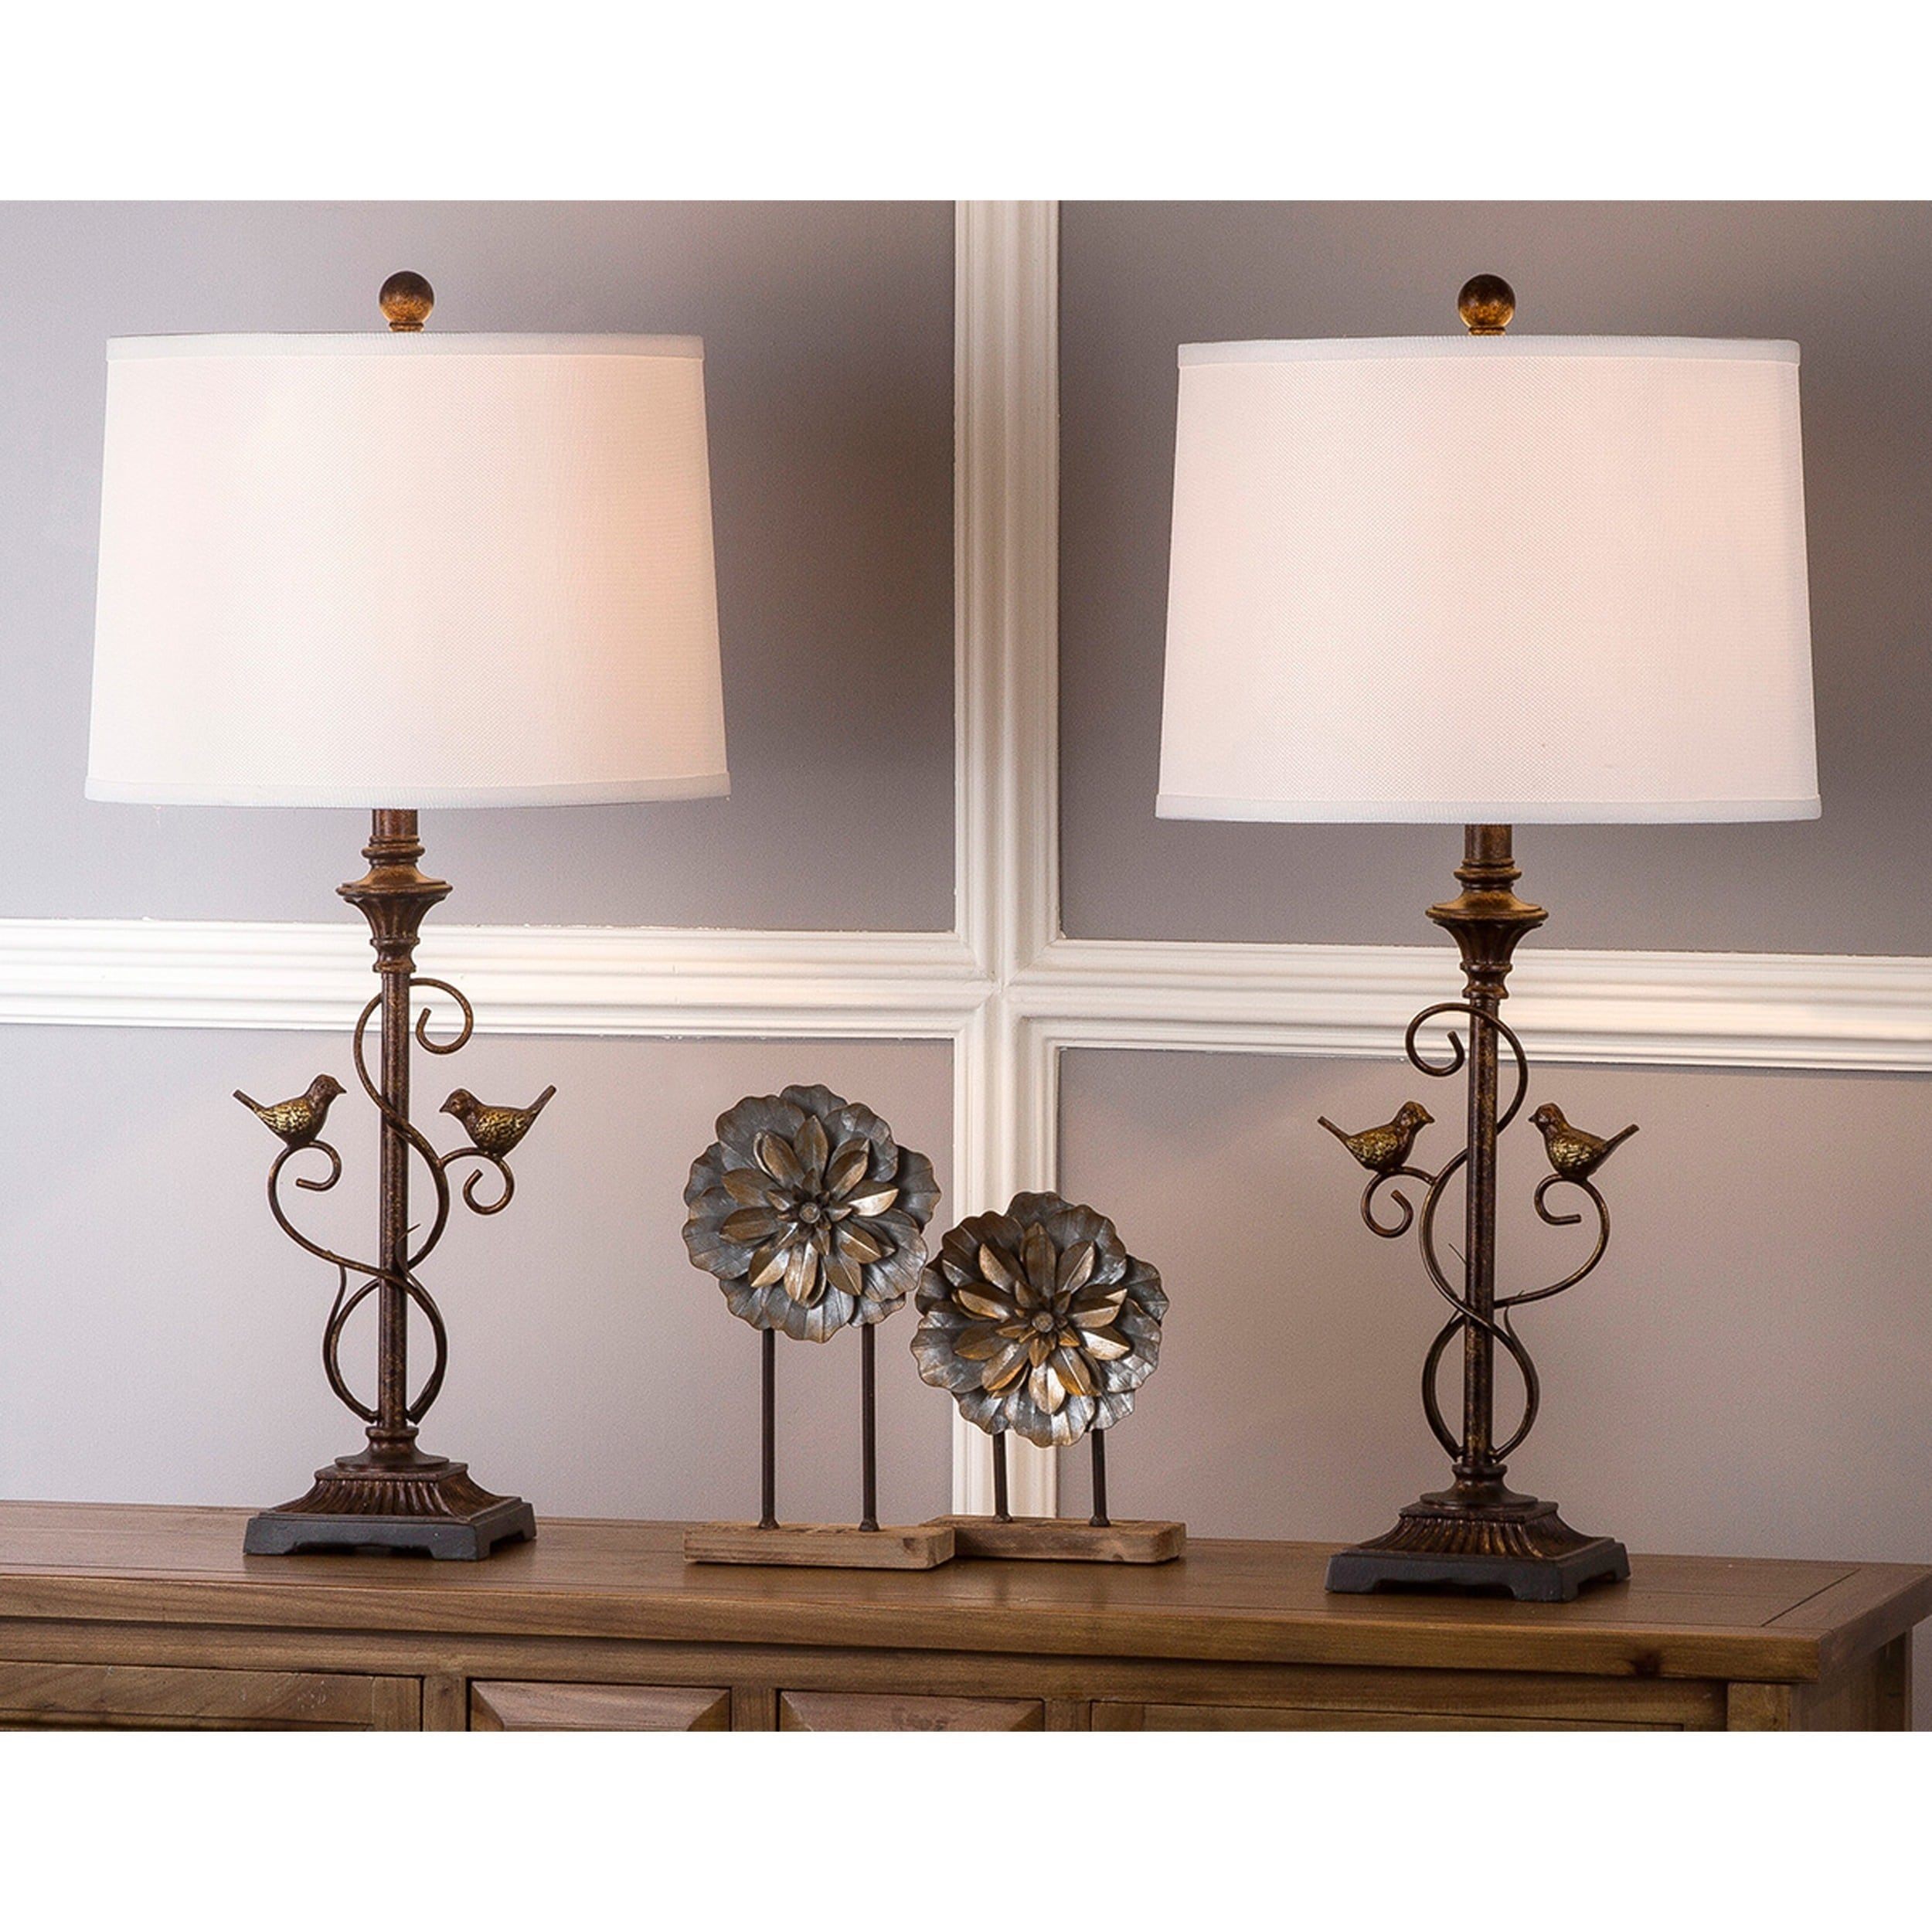 Safavieh Lighting 28 Inch Birdsong Oil Rubbed Bronze Table Lamp Set Of 2 On Free Shipping Today 9527328